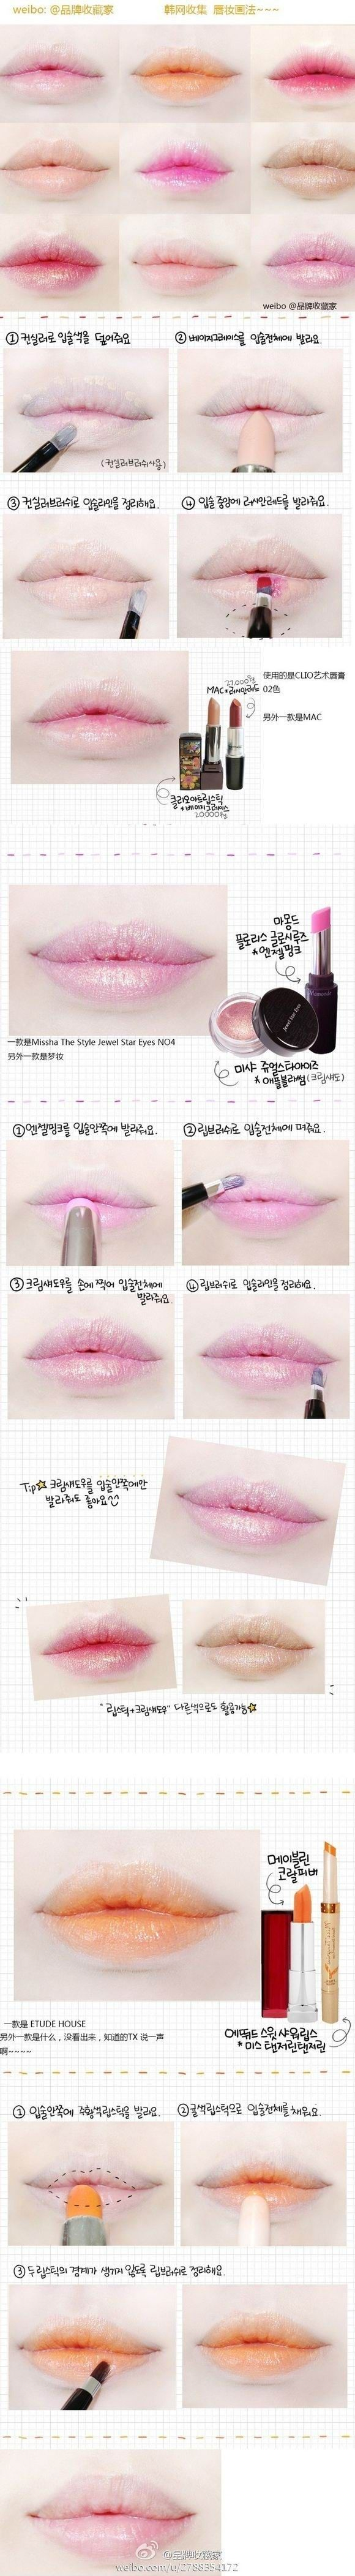 "Gra nt lips give that ""just ate a popsicle"" adorable look that can be part of your daily make up"